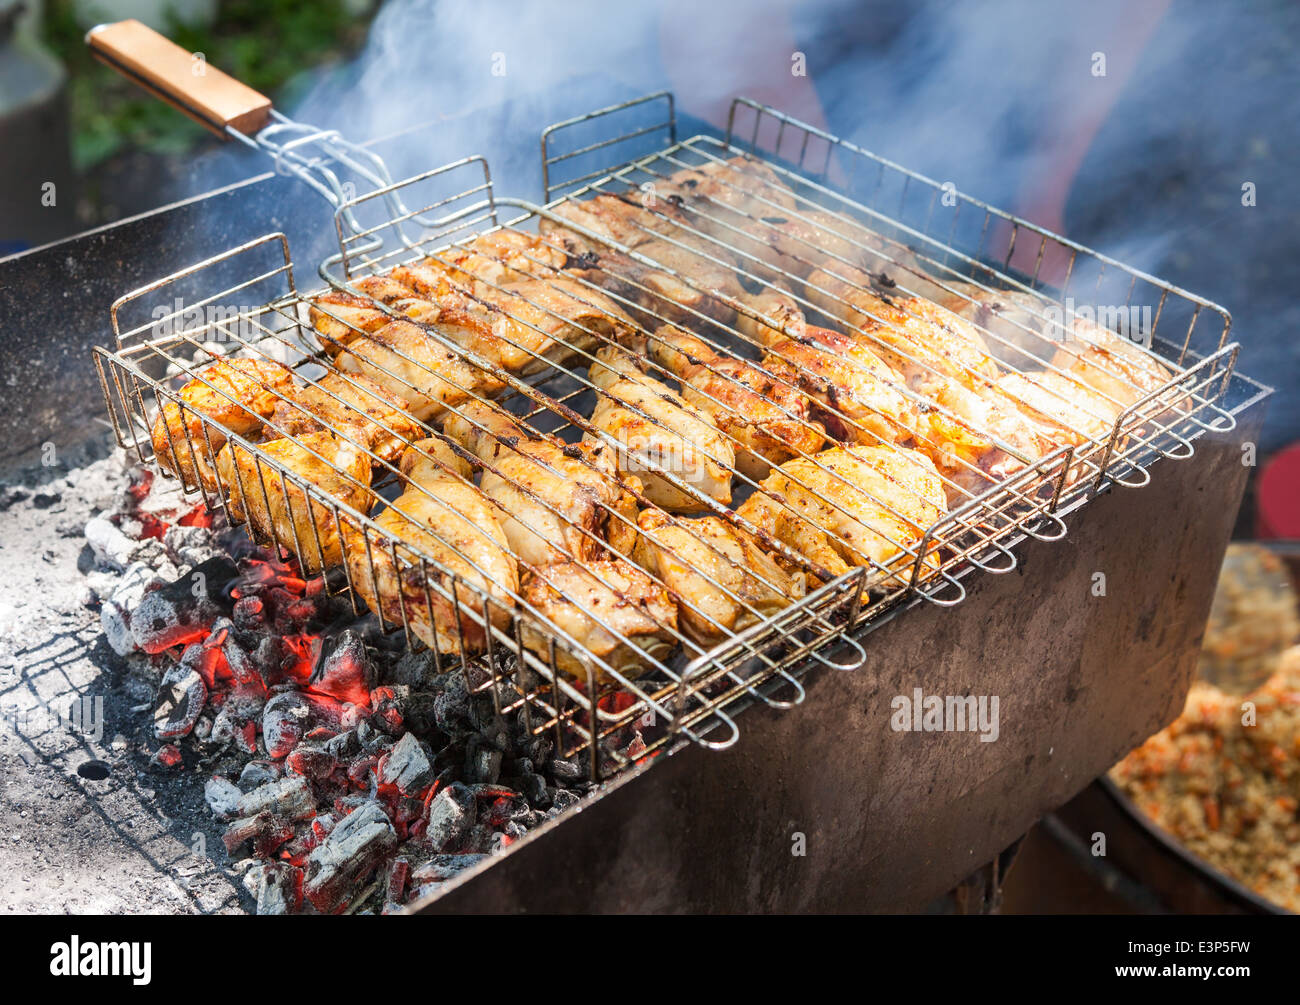 Preparation of chicken meat slices in sauce on fire - Stock Image